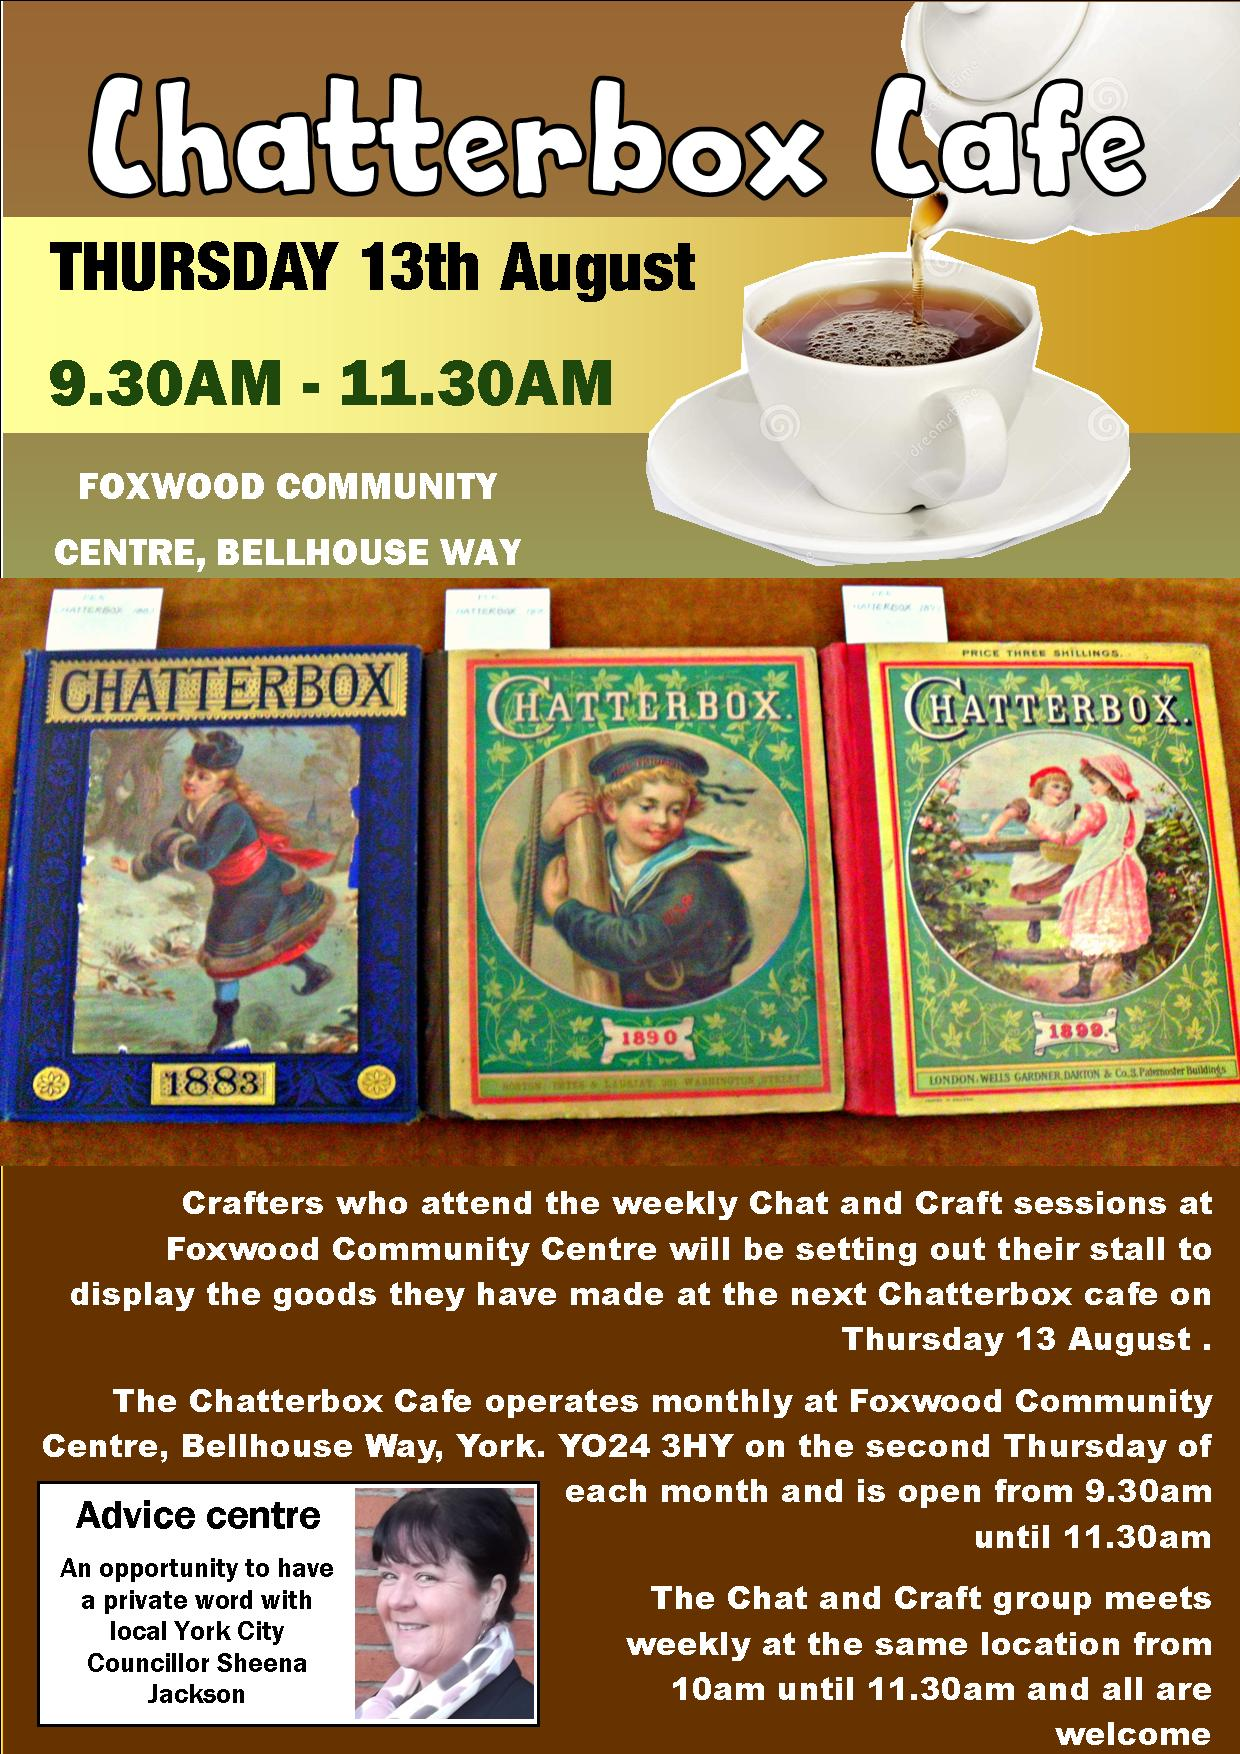 Chatterbox cafe 9th Aug 2015